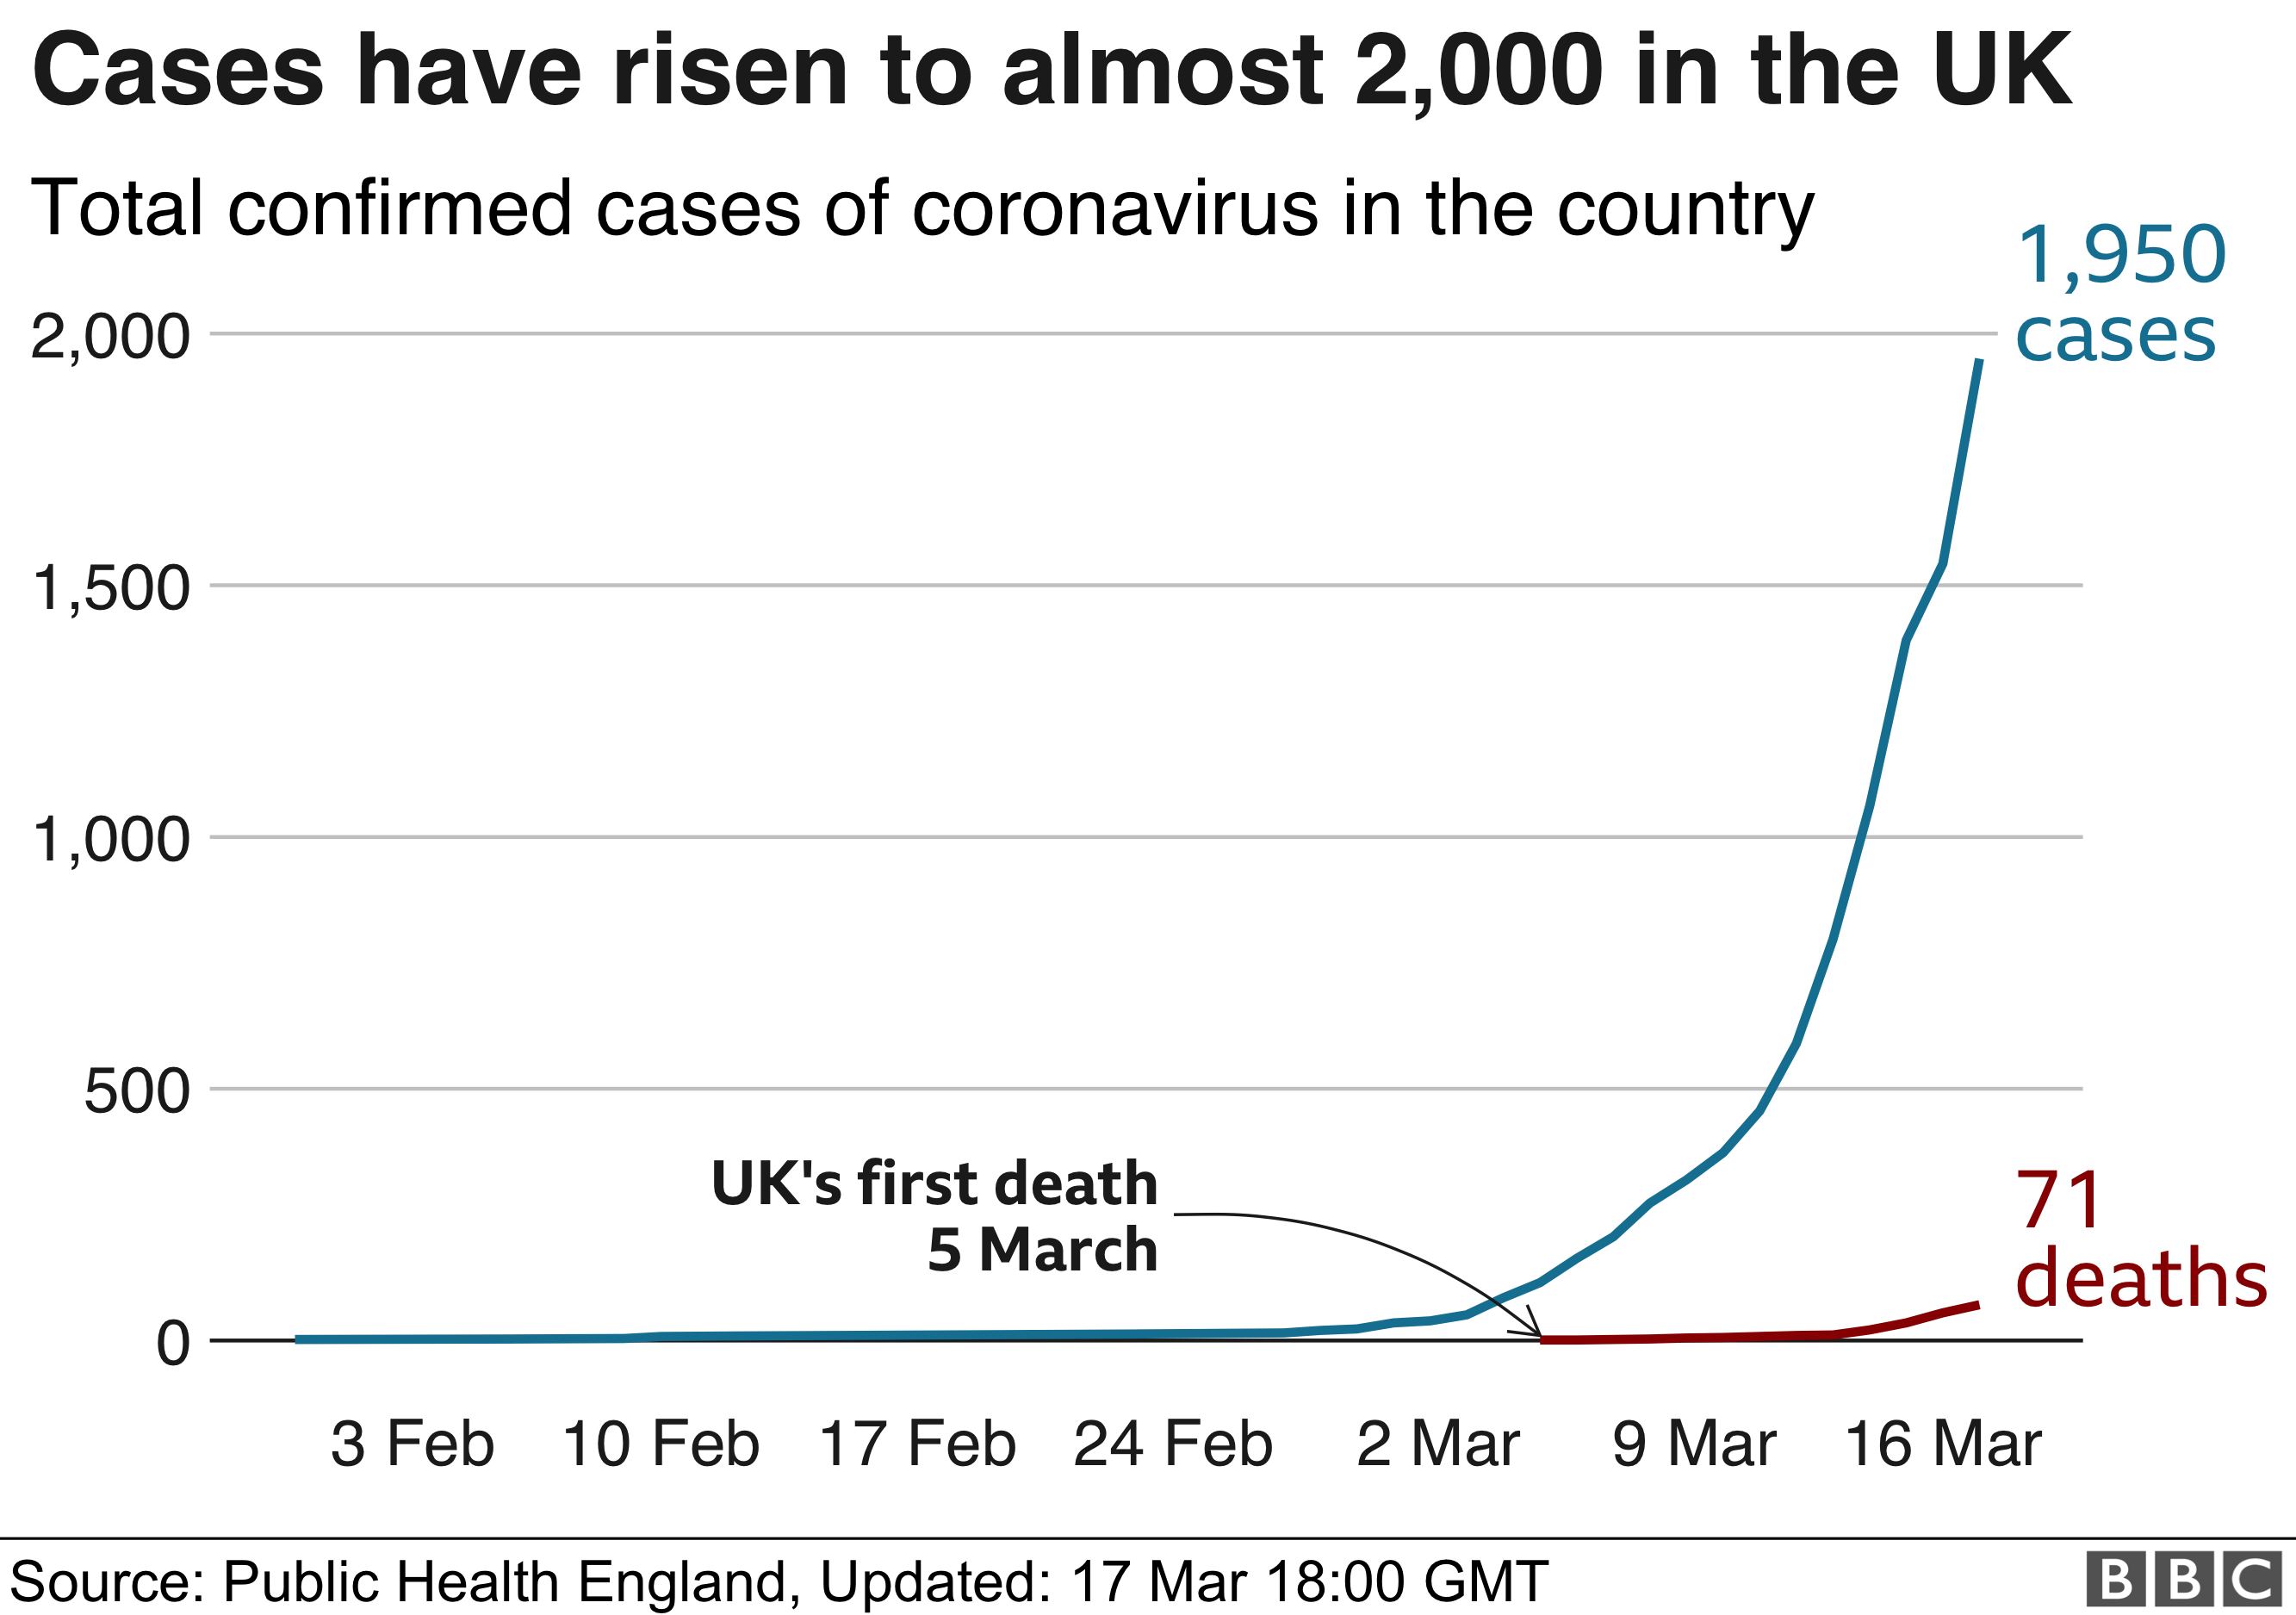 Chart on UK cases of coronavirus